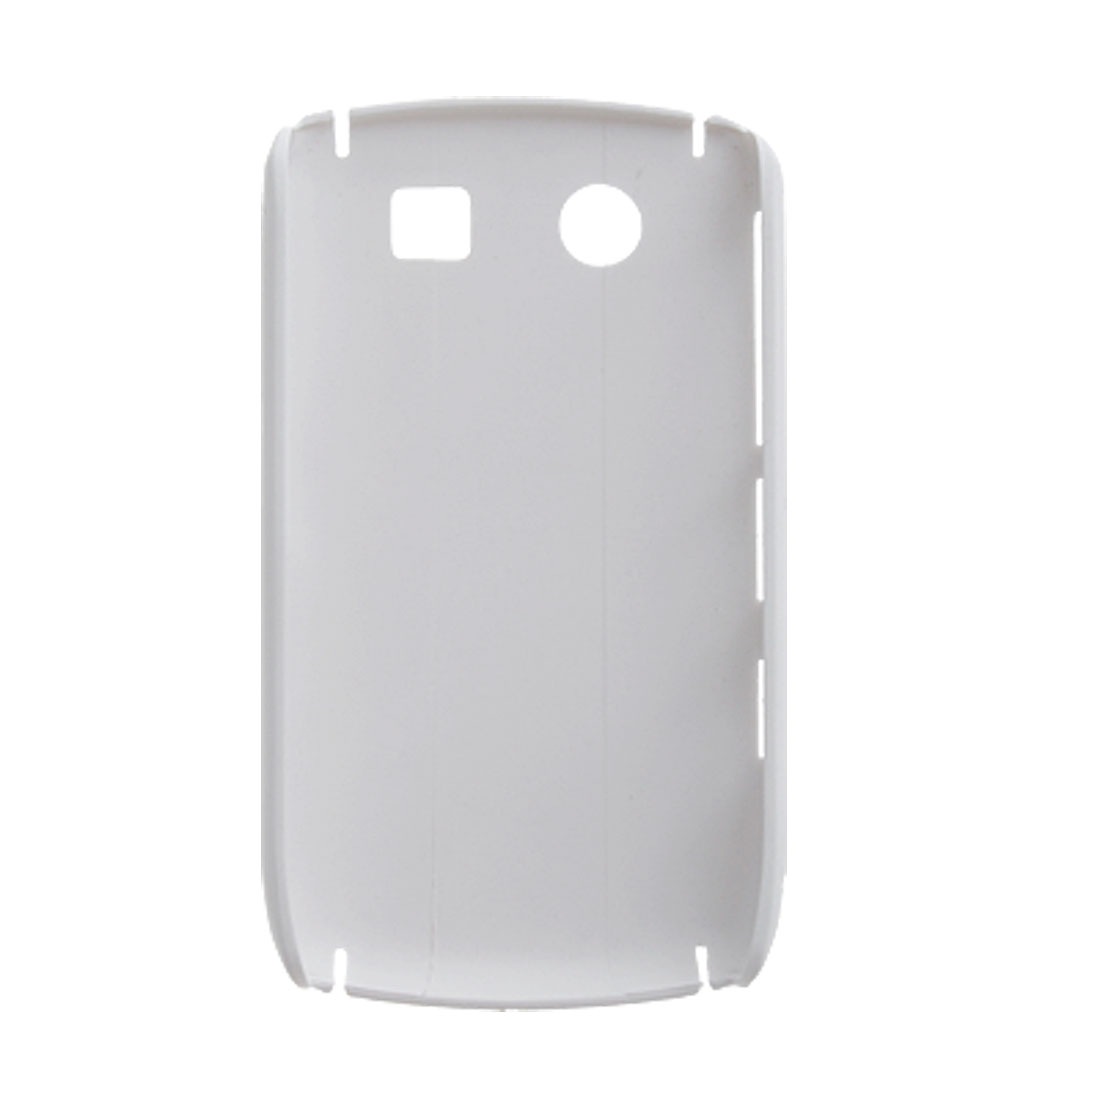 Rubberized White Hard Plastic Back Case for Blackberry 8900